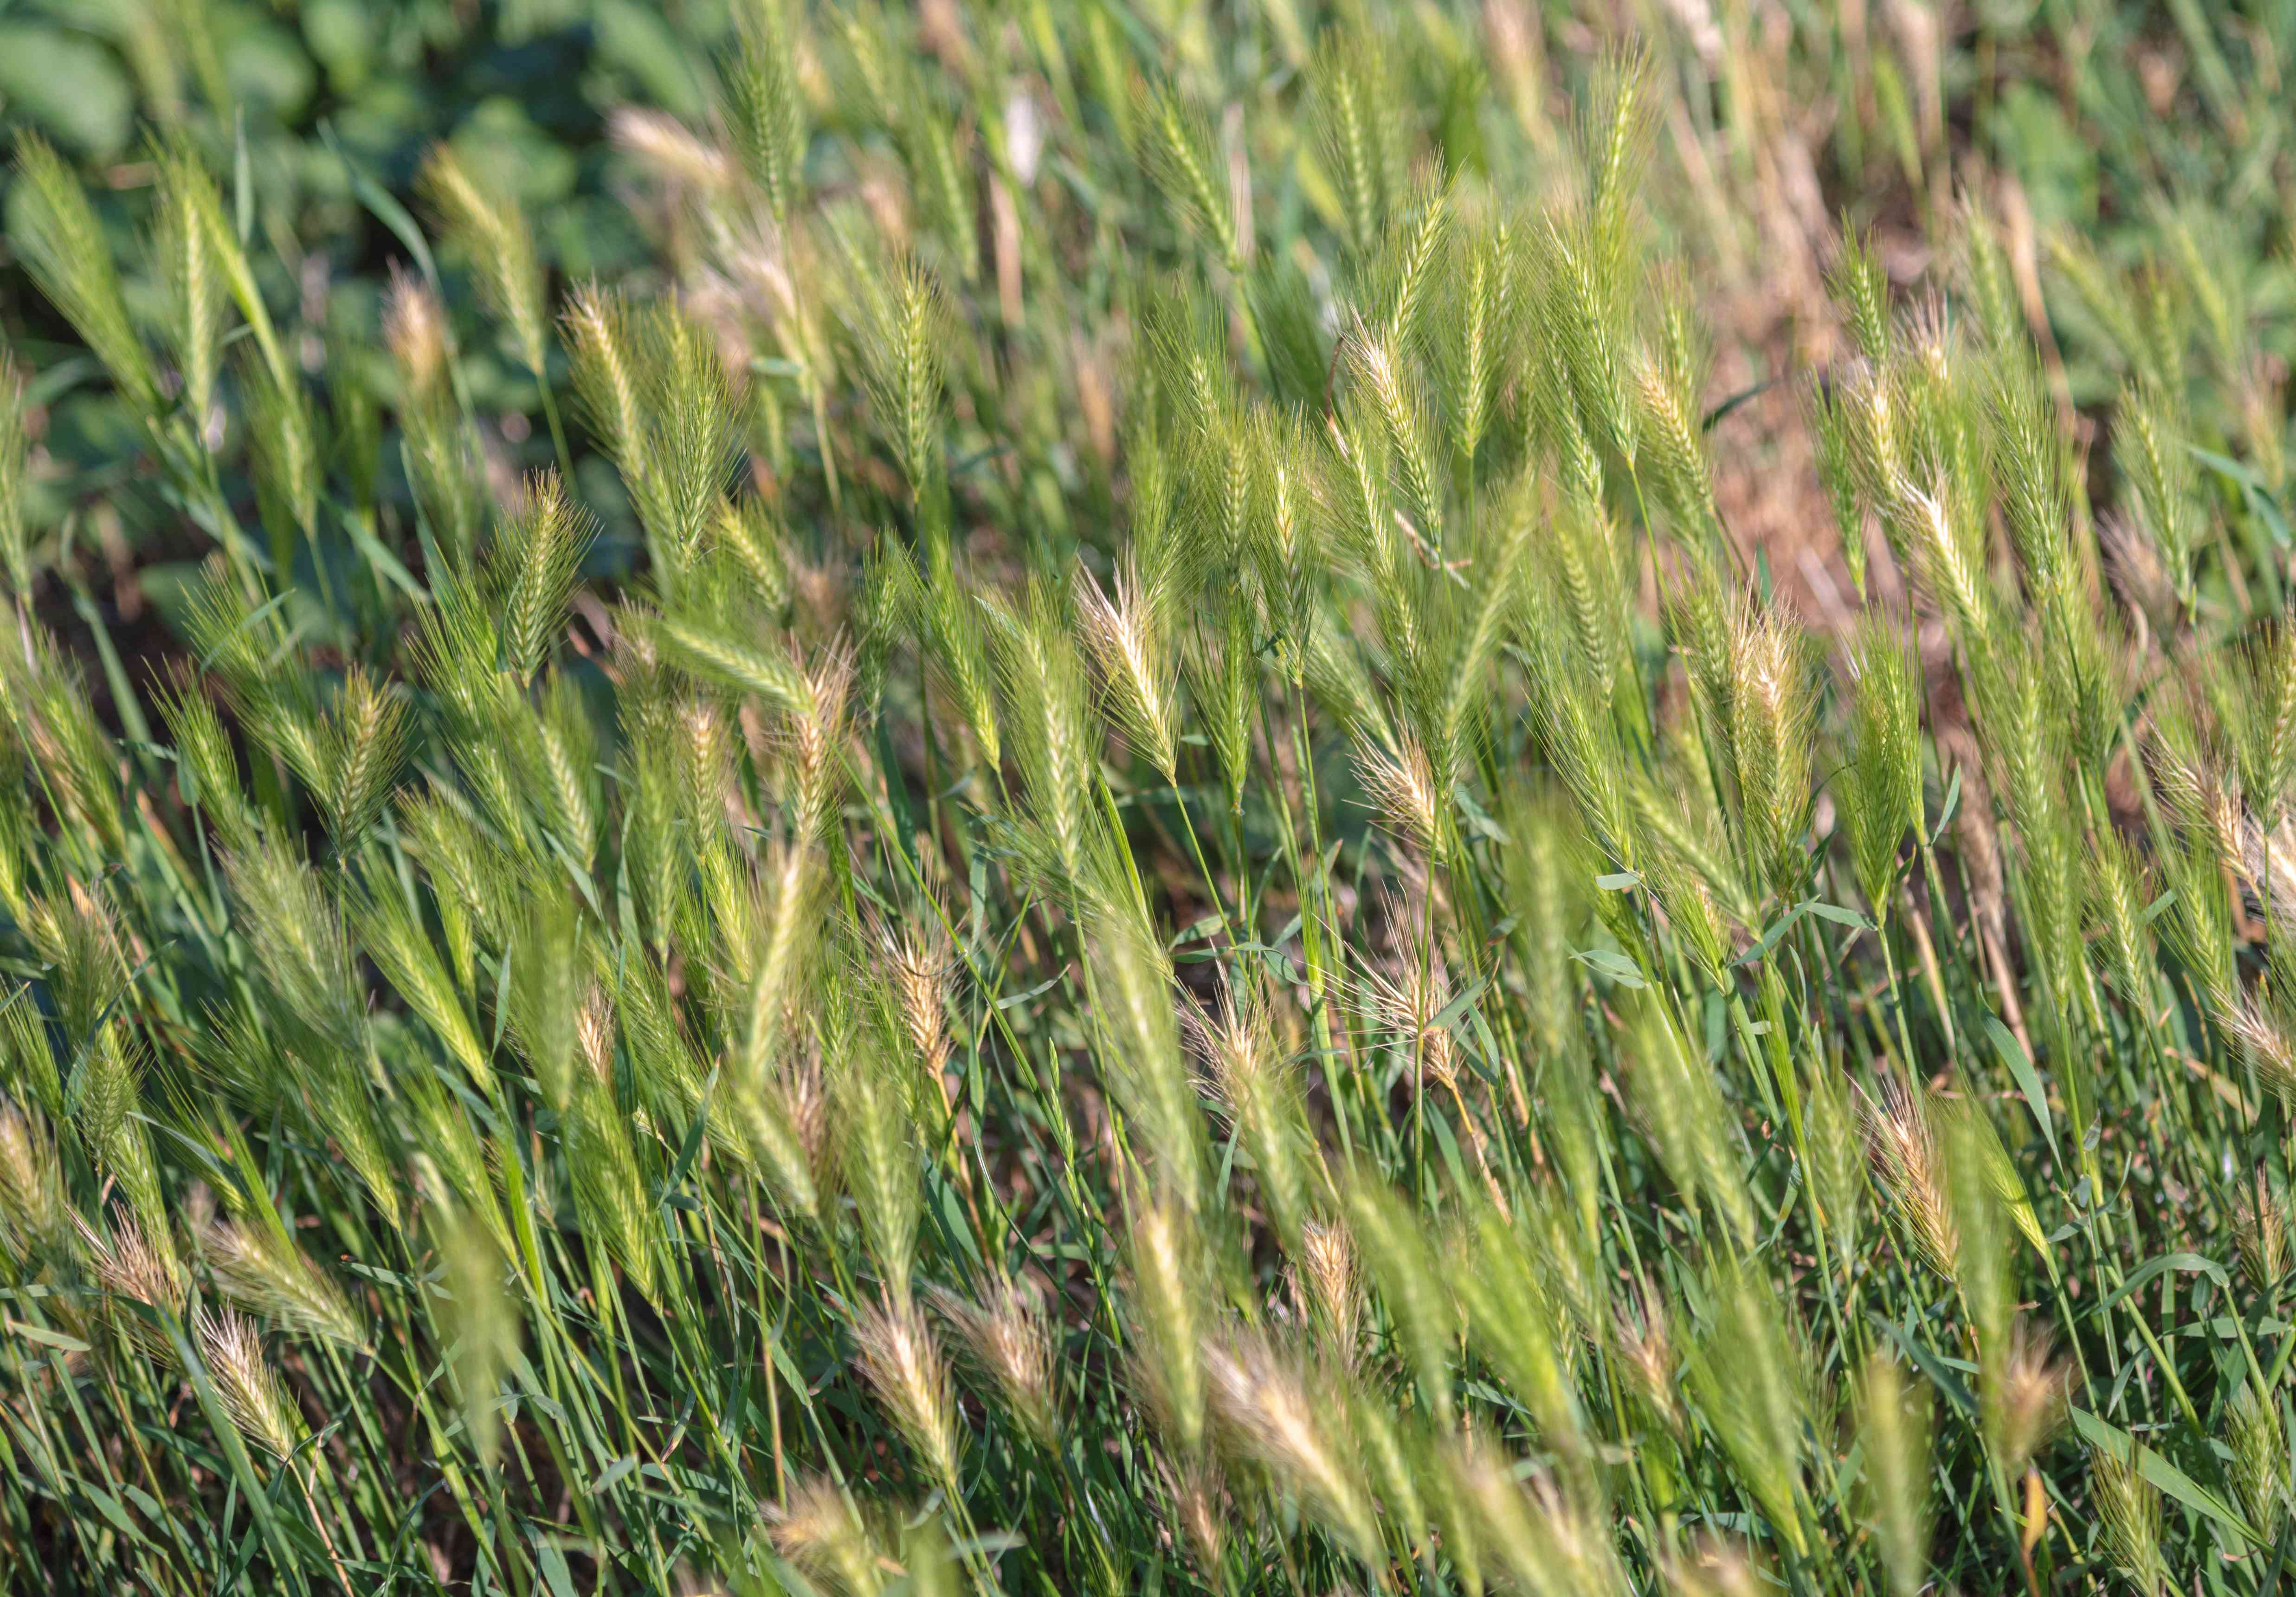 Canada wil rye ornamental with clump-forming grass on thin stems